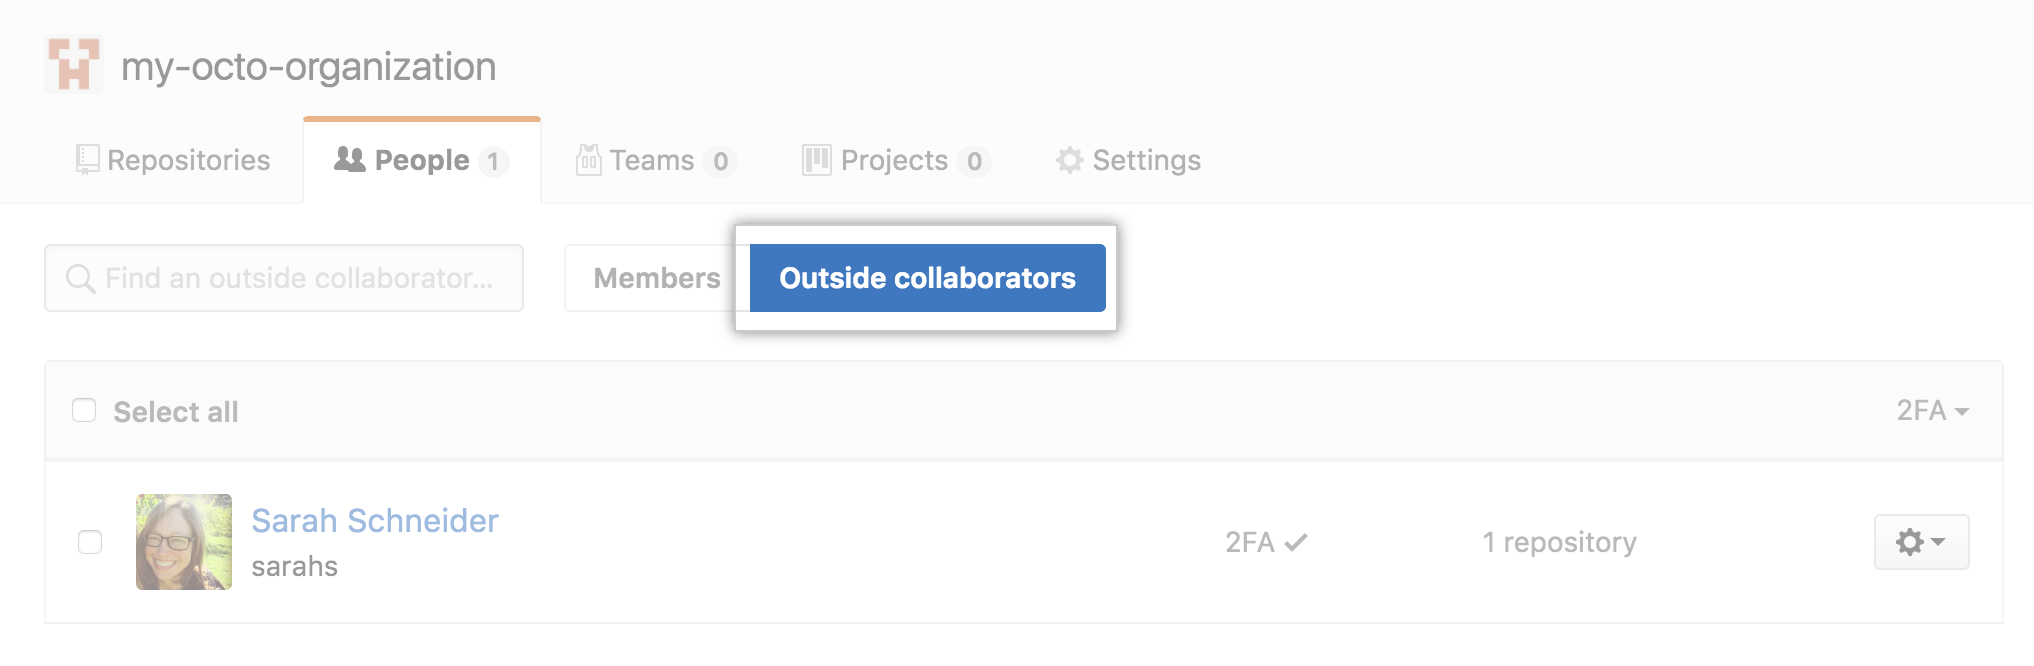 Button to invite members or outside collaborators to an organization